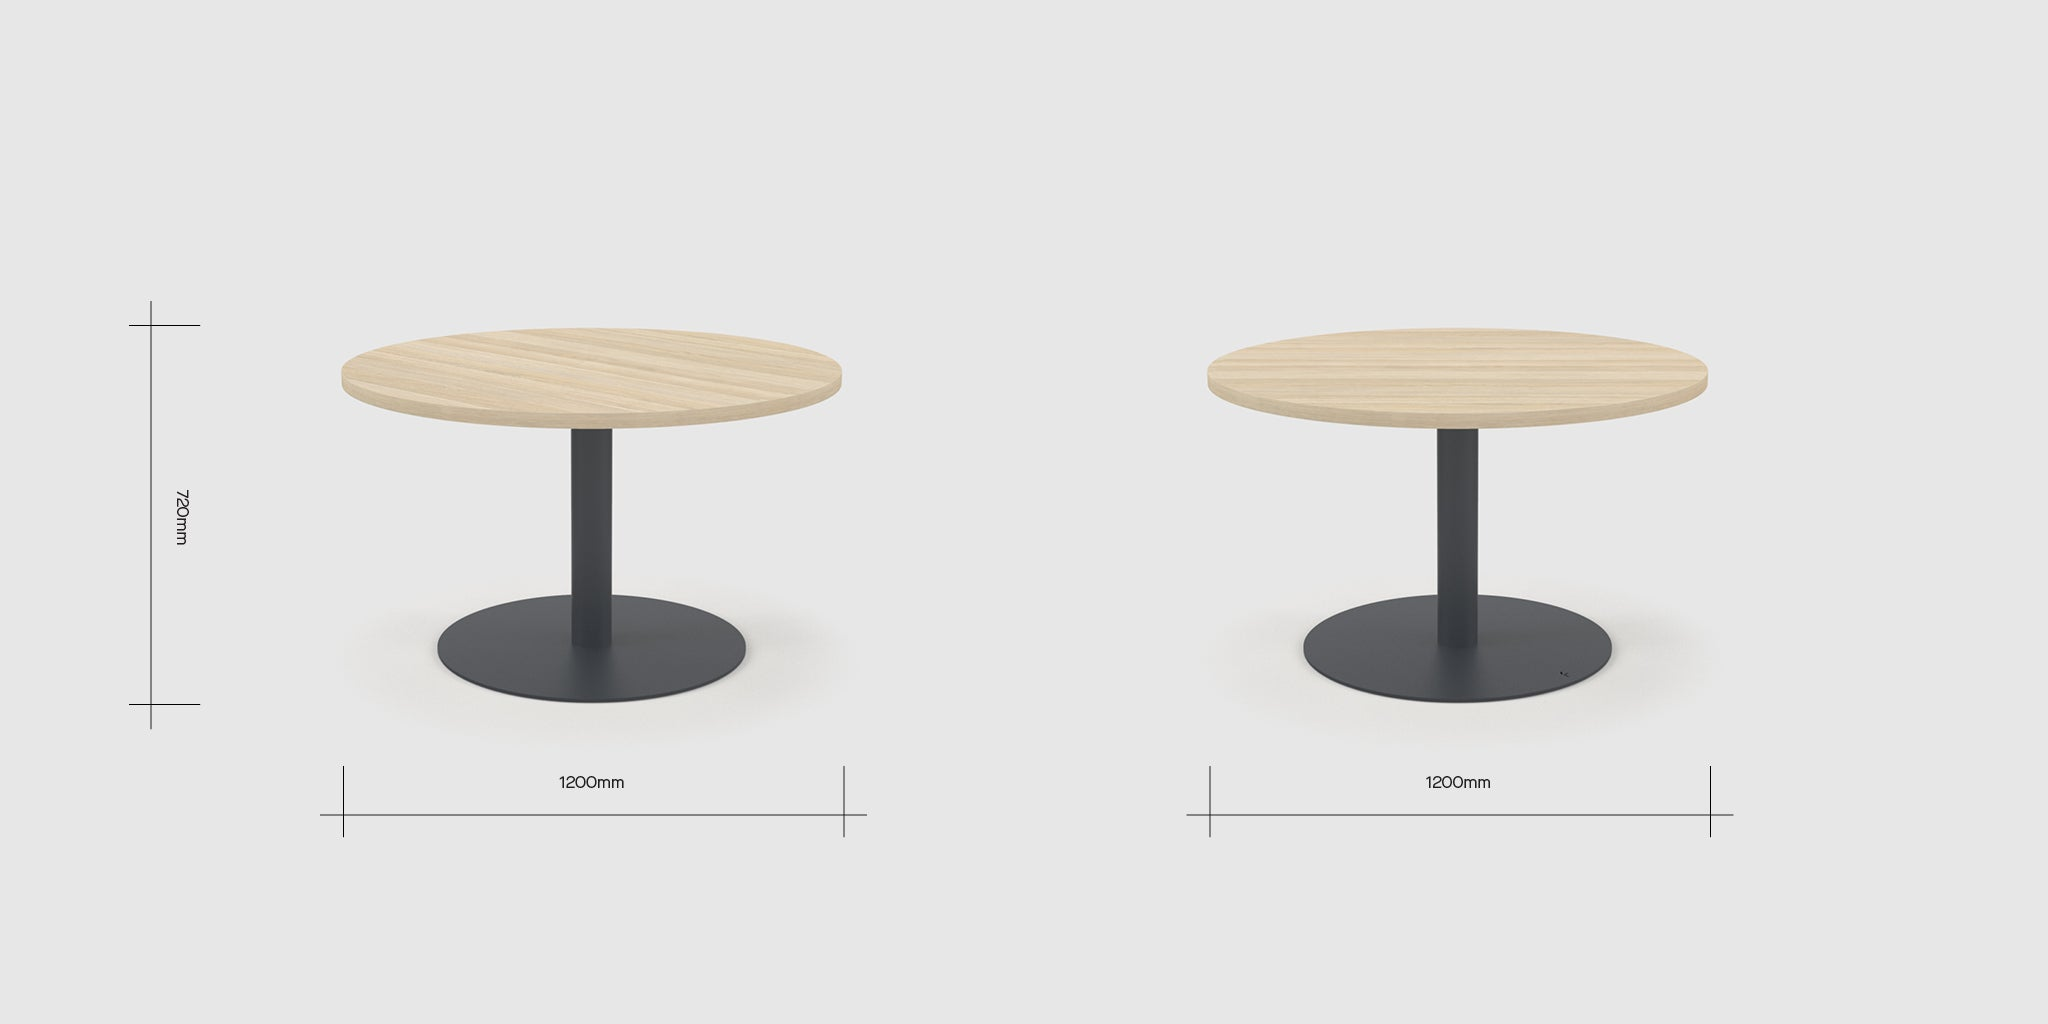 Disc 5 Person Table Dimensions